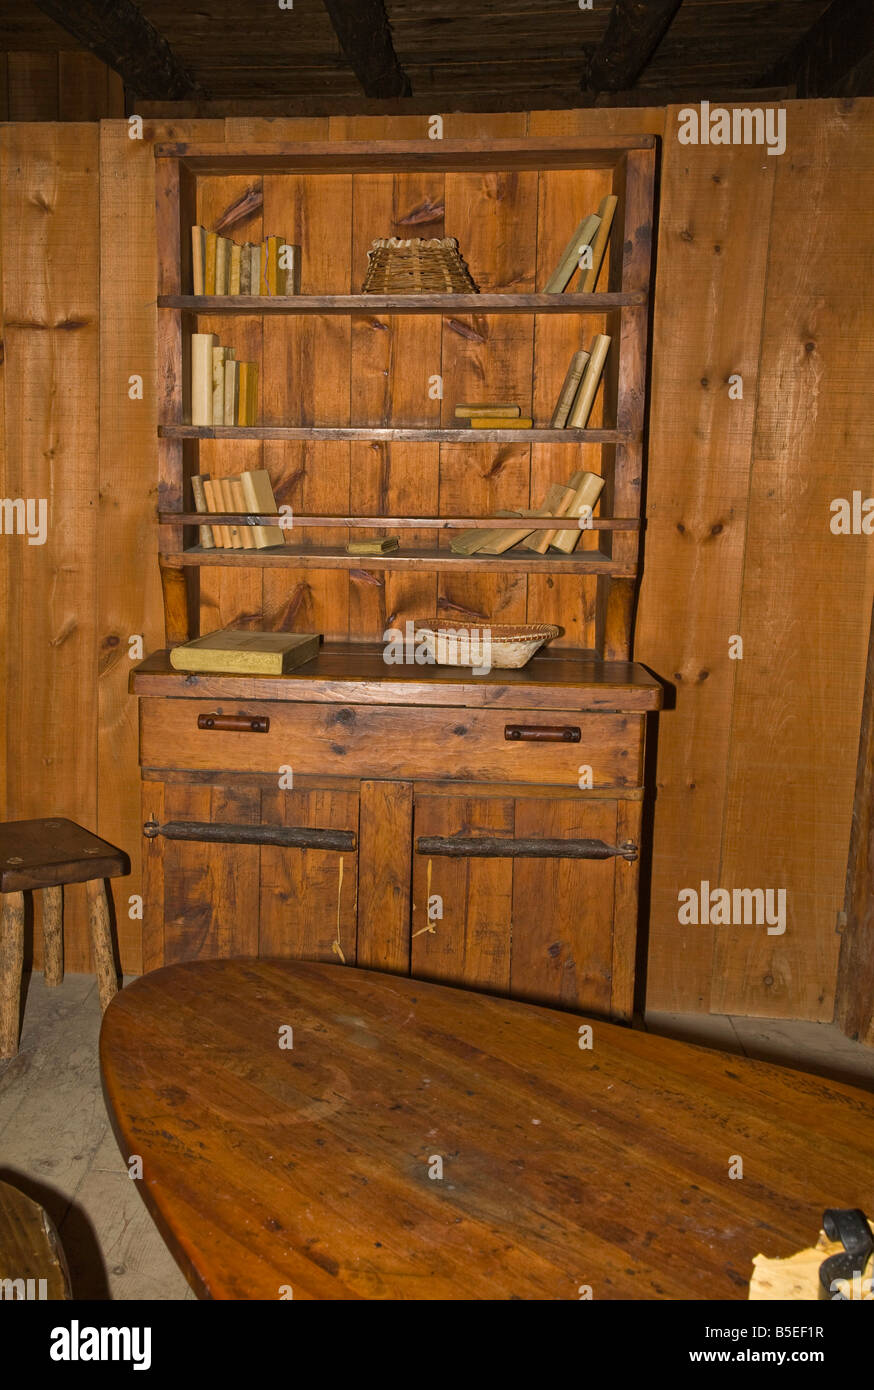 Primitive Living quarters as seen at Sainte-Marie among the Hurons, Midland,Ontario,Canada - Stock Image